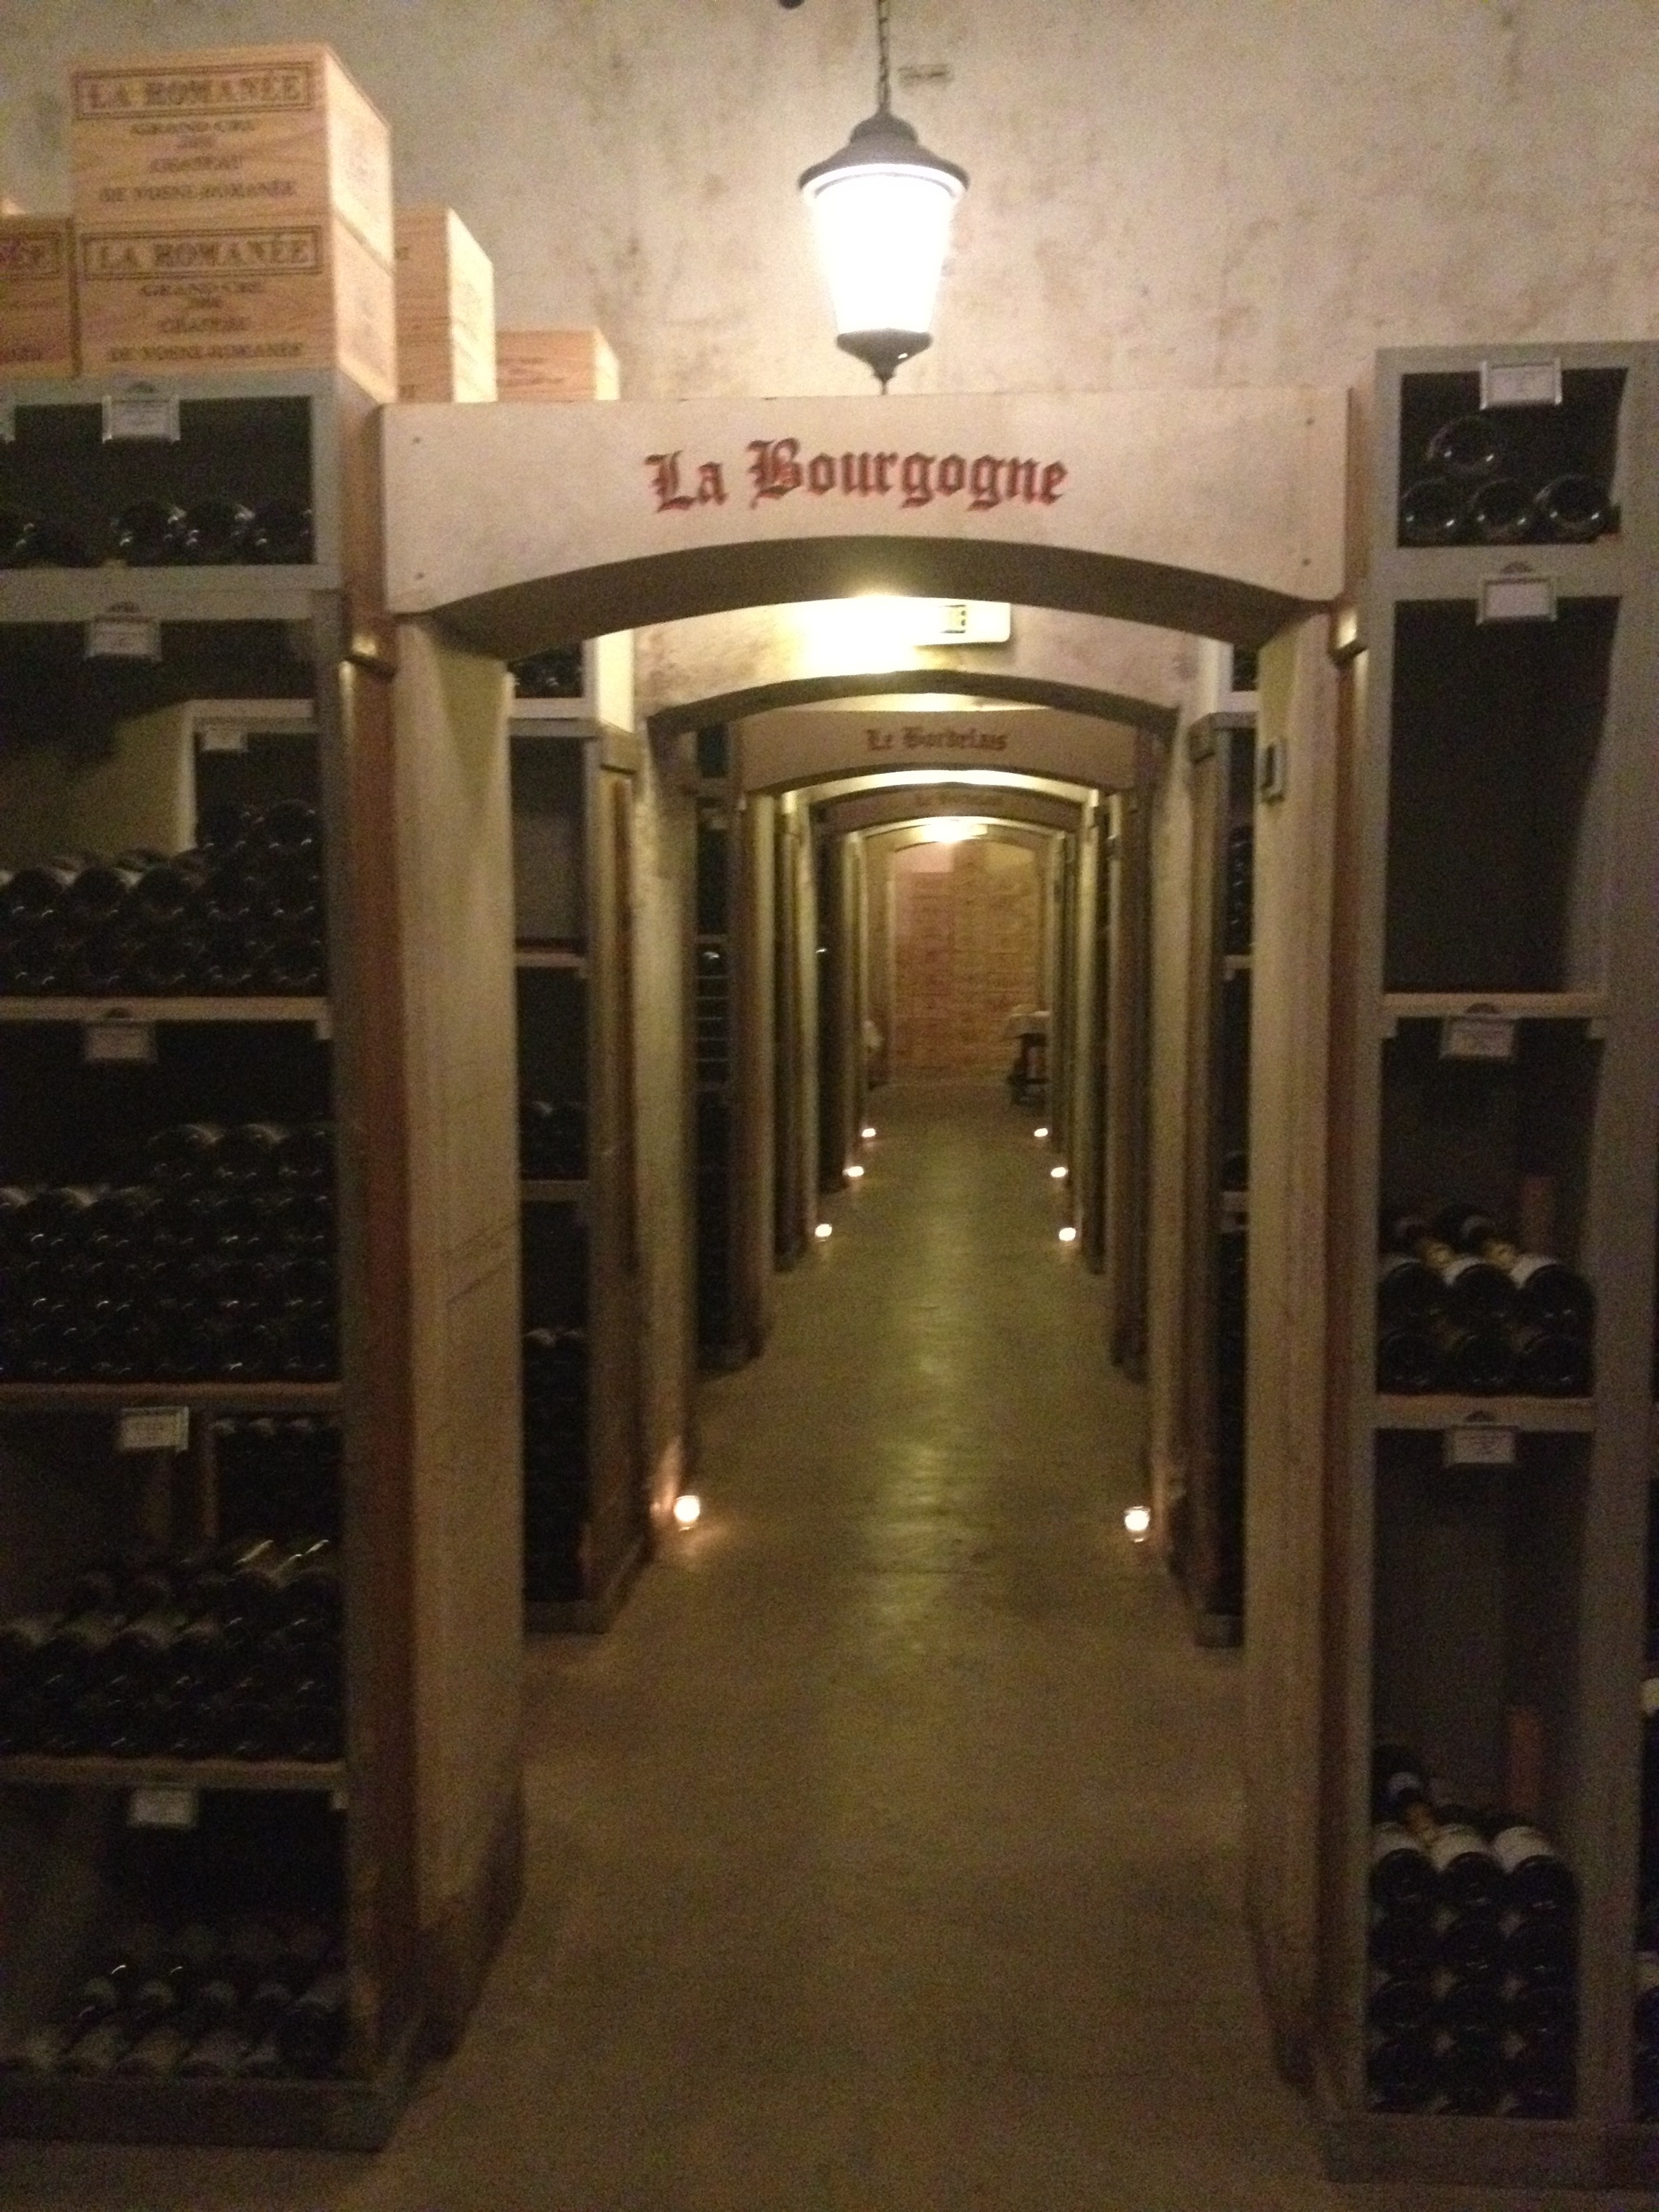 The tunnels of the wine cellar